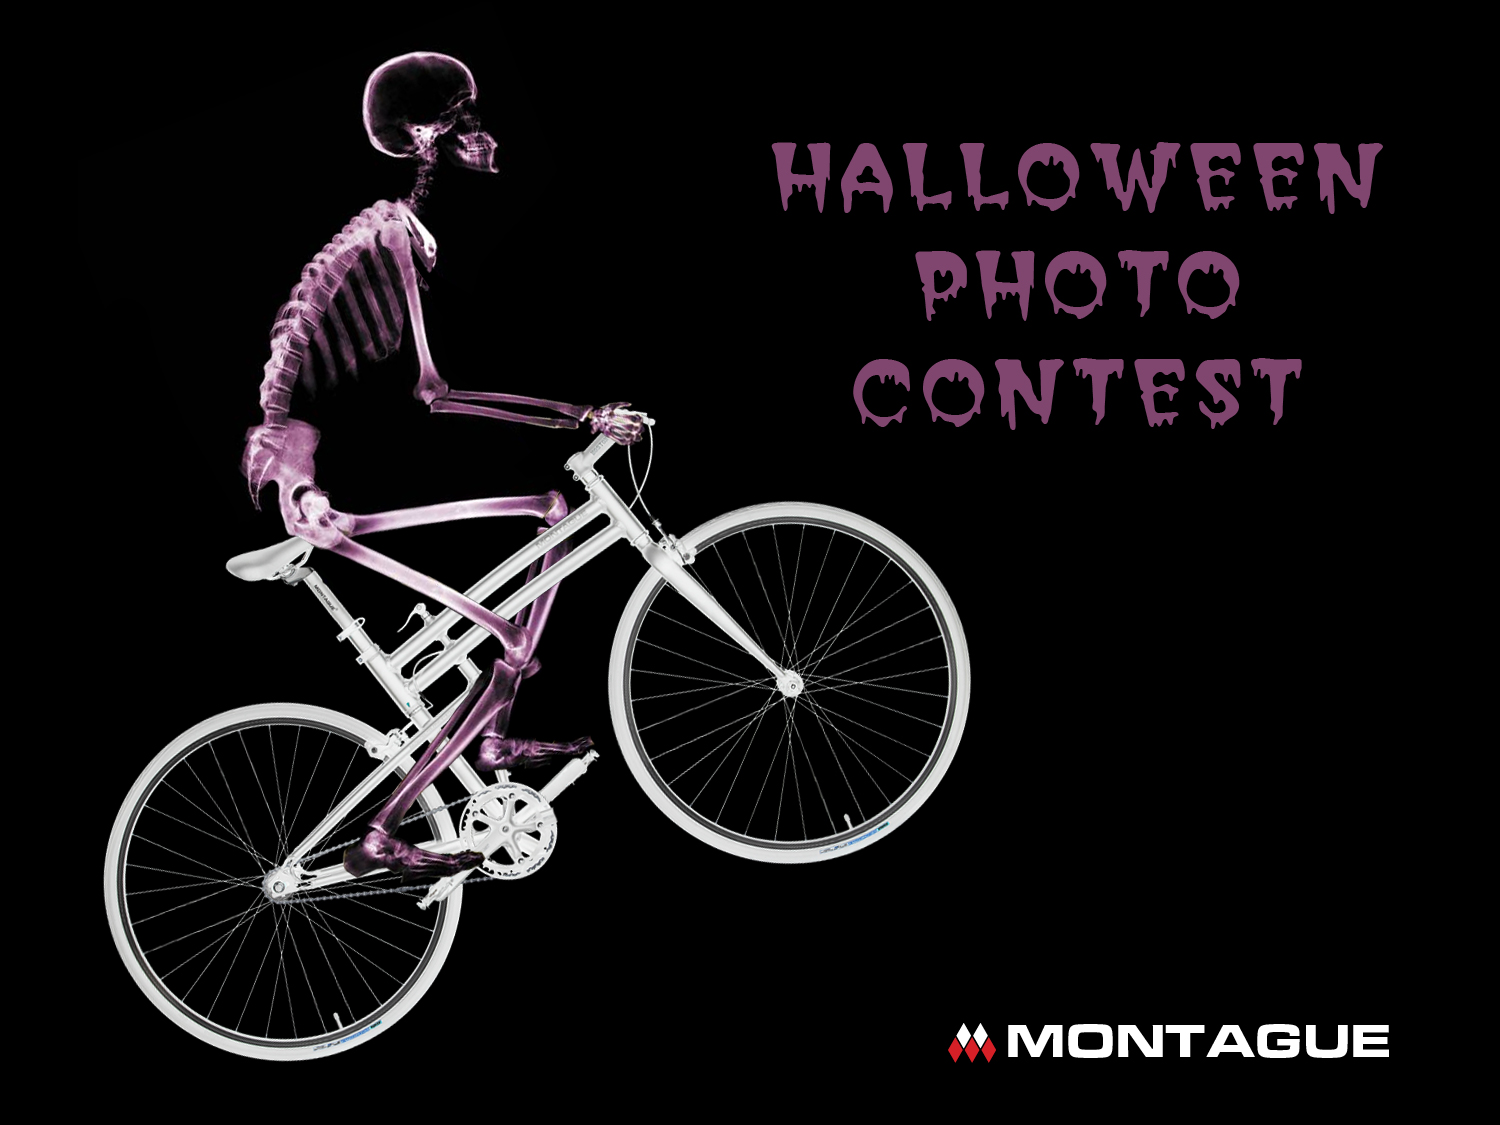 #MontagueHalloween Photo Contest